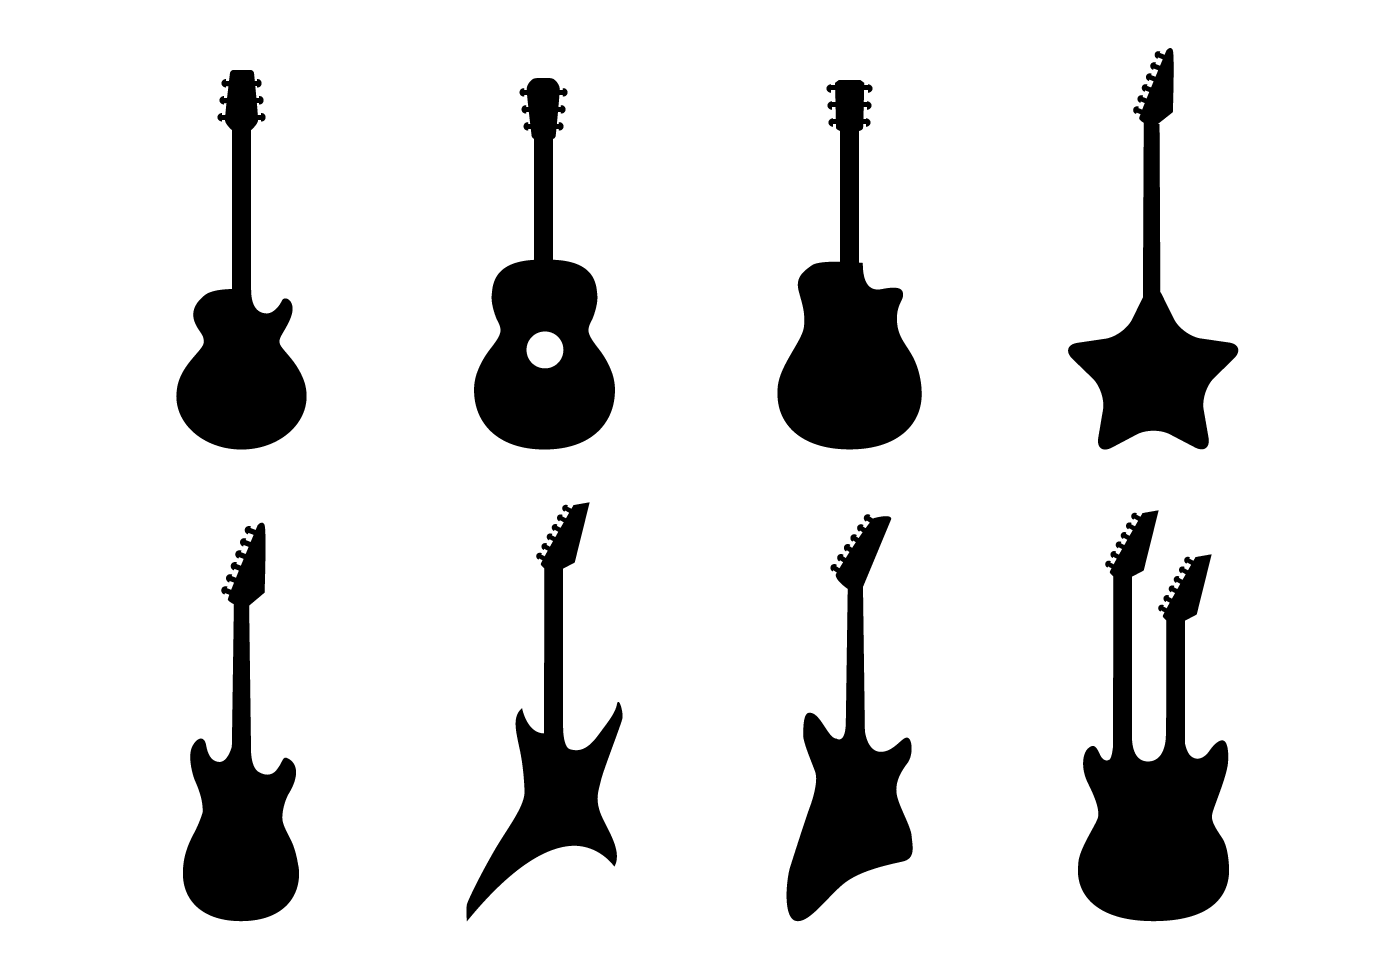 Free Guitar Vector - Download Free Vector Art, Stock Graphics & Images